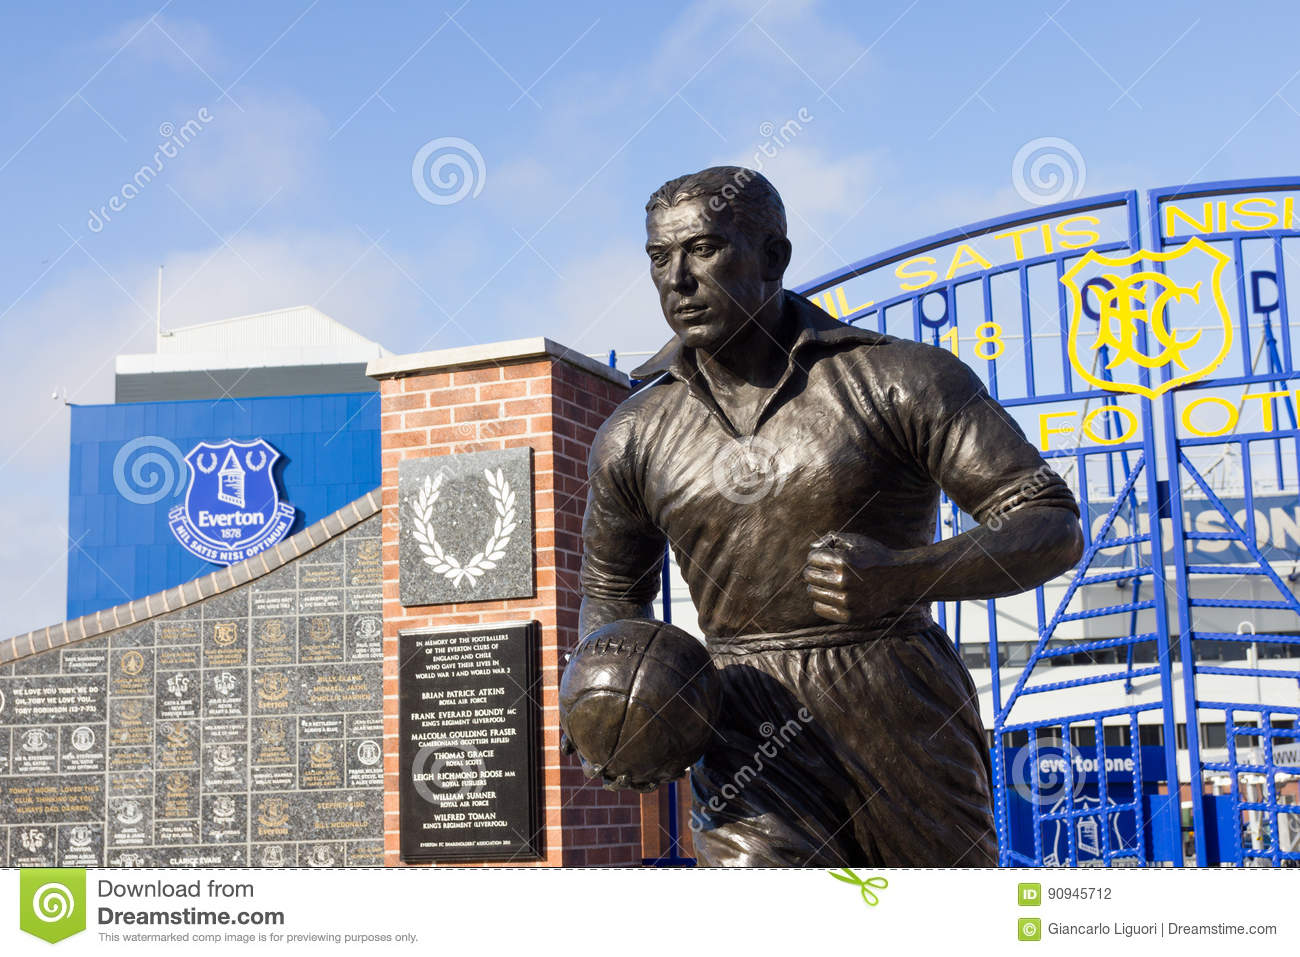 View The Everton Footbal Stadium And Statue Dixie Dean